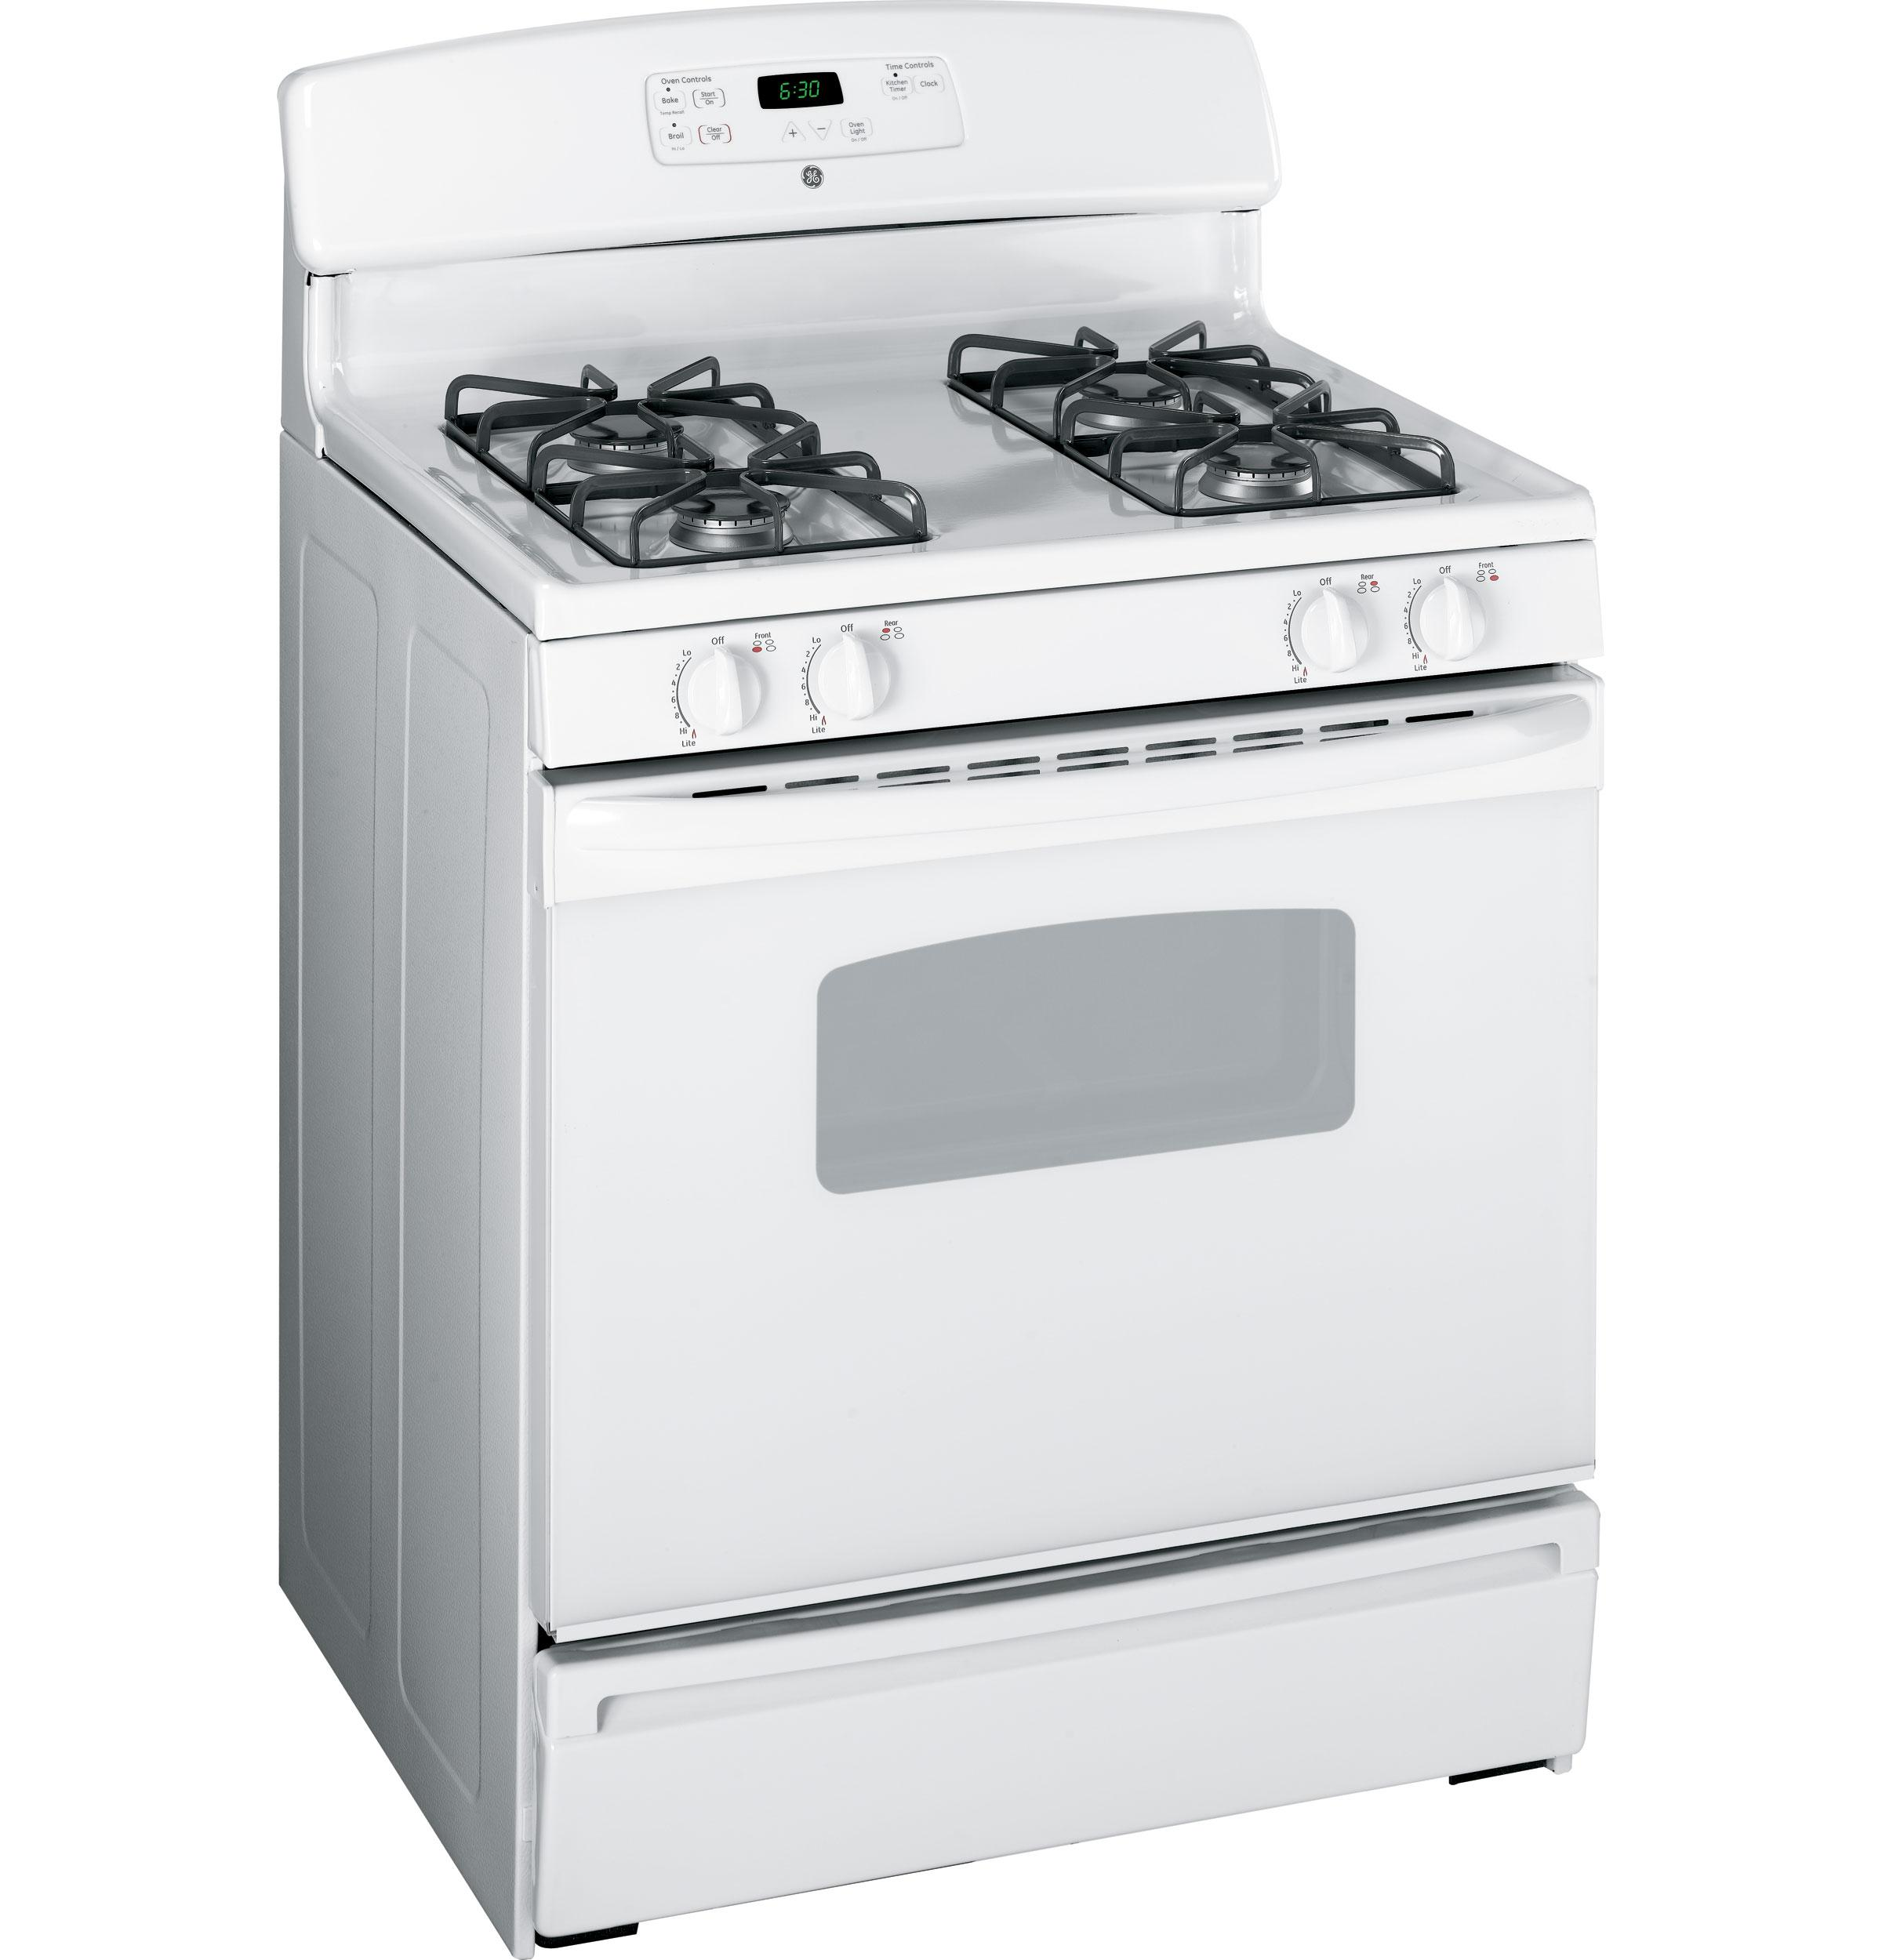 Jgbs18denbb General Electric Jgbs18denbb Gas Ranges Black